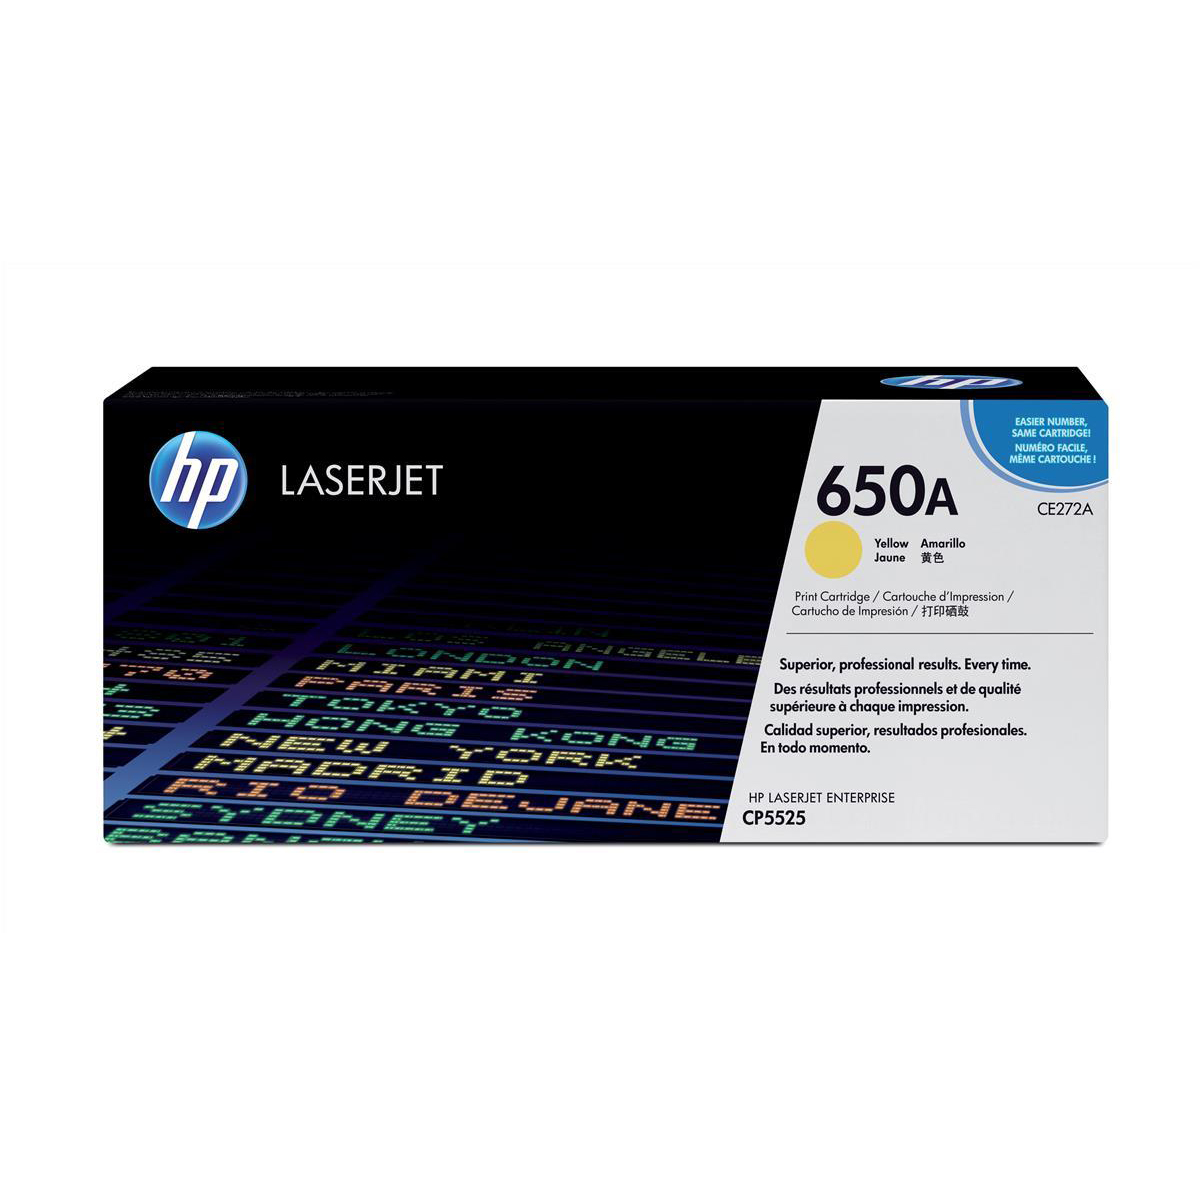 Hewlett Packard [HP] No. 650A Laser Toner Cartridge Page Life 15000pp Yellow Ref CE272A